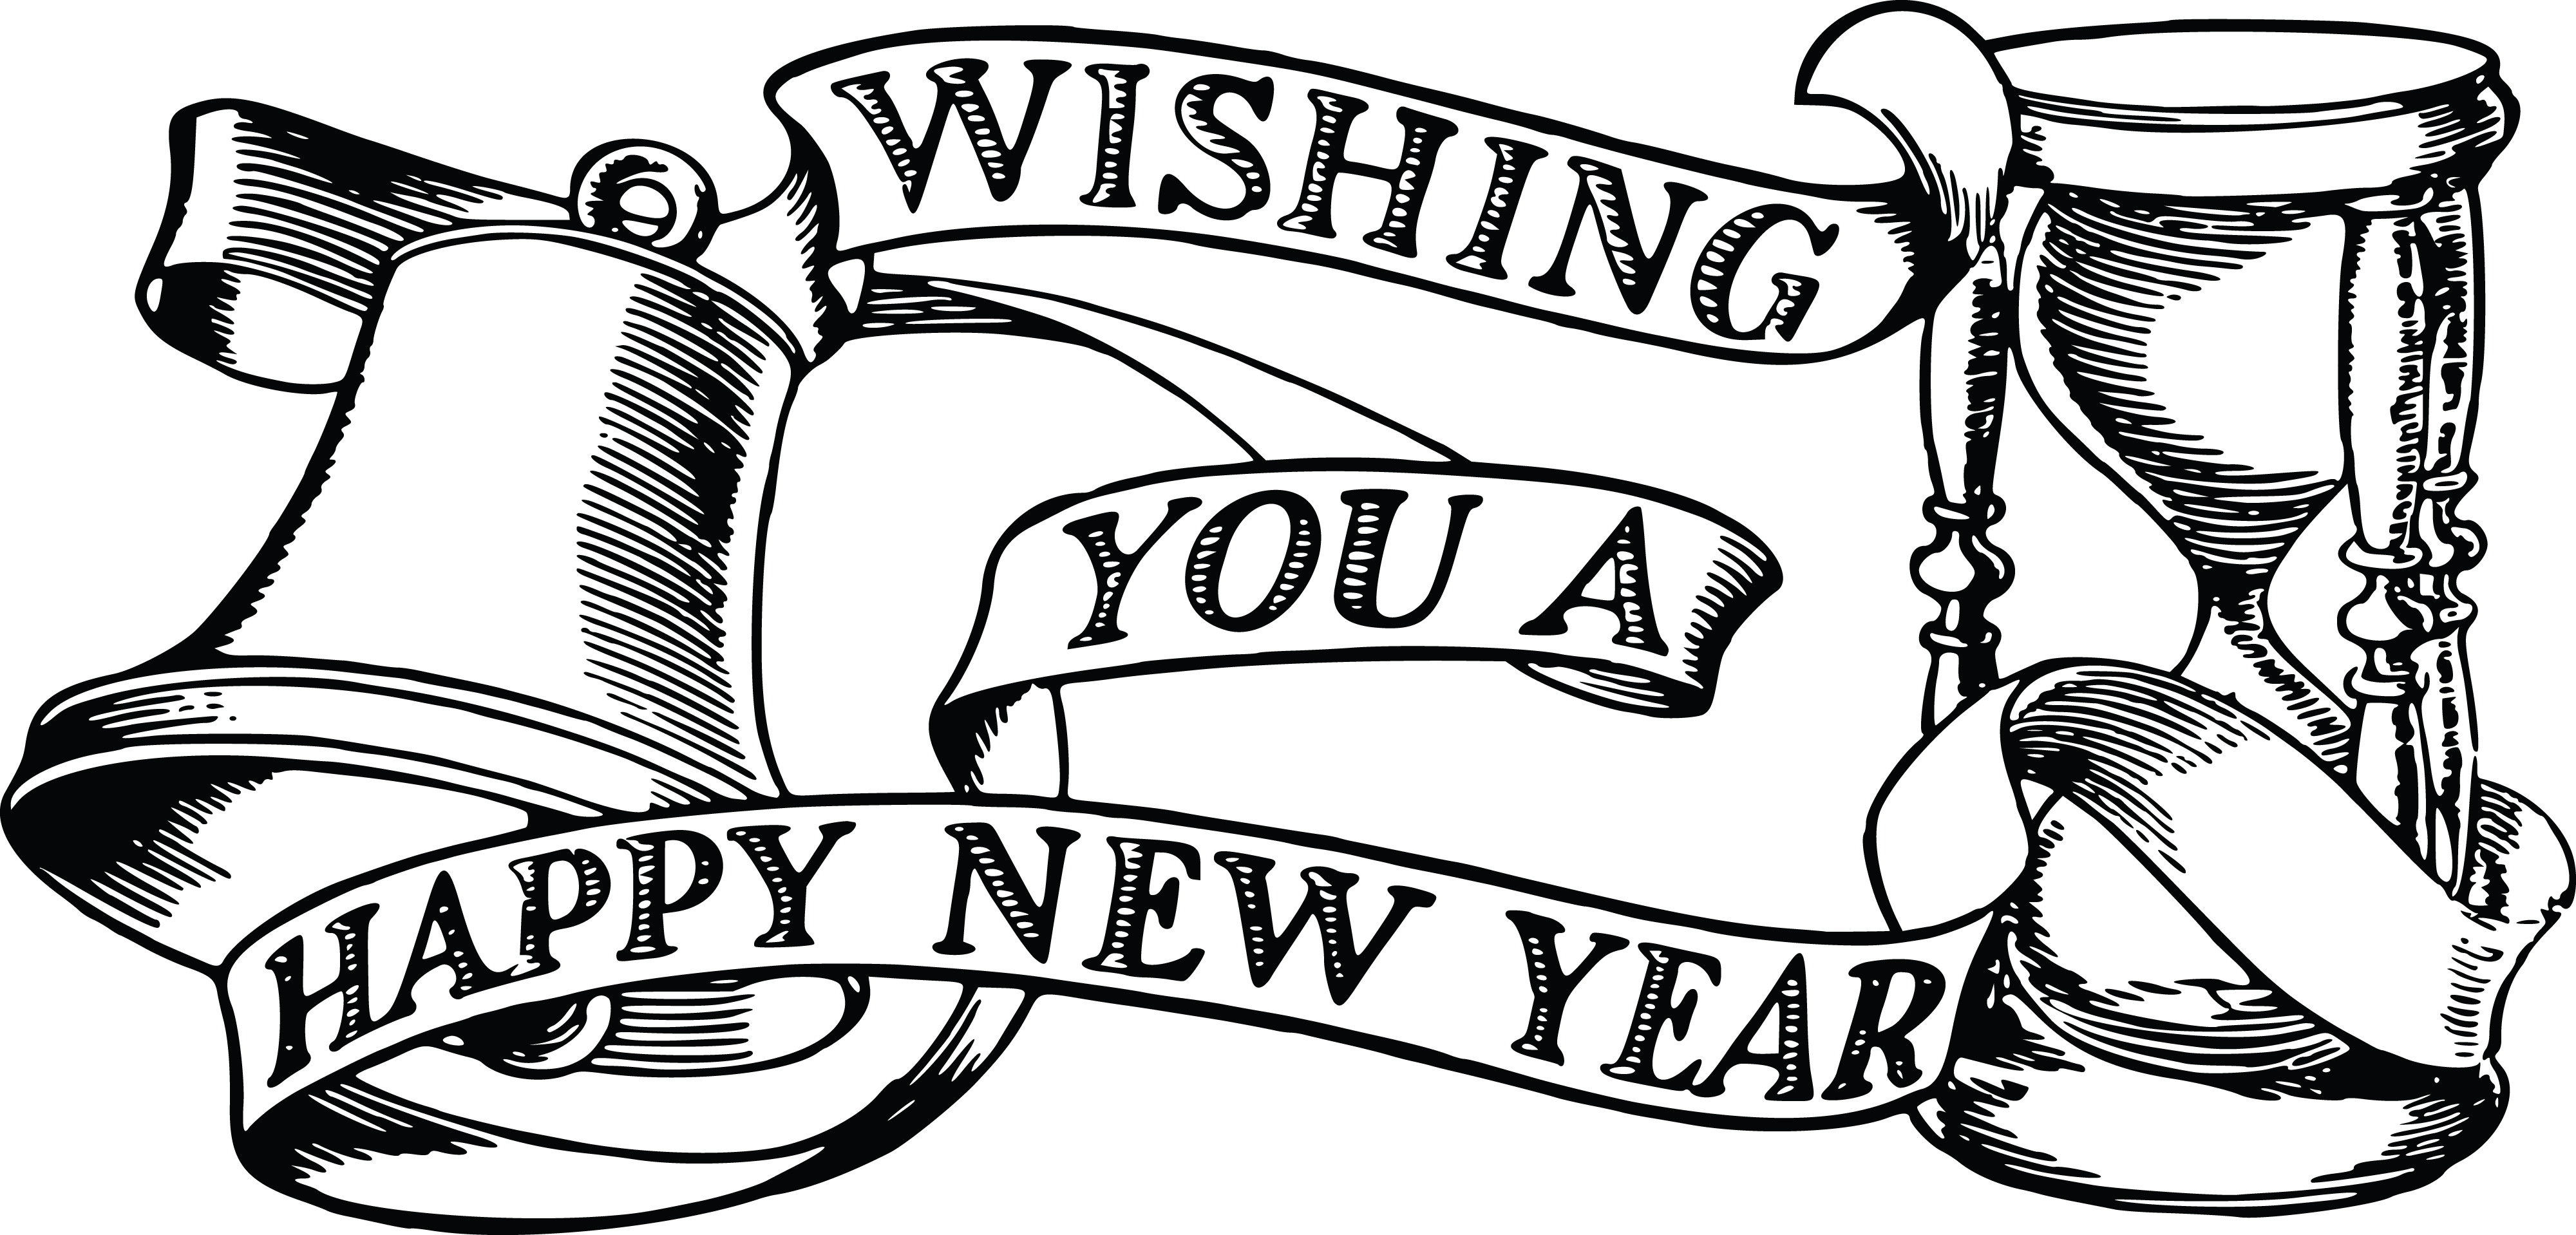 Happy new year clipart 2019 black and white clipart freeuse download Happy New Year Clipart 2019 With Images - Daily SMS Collection clipart freeuse download